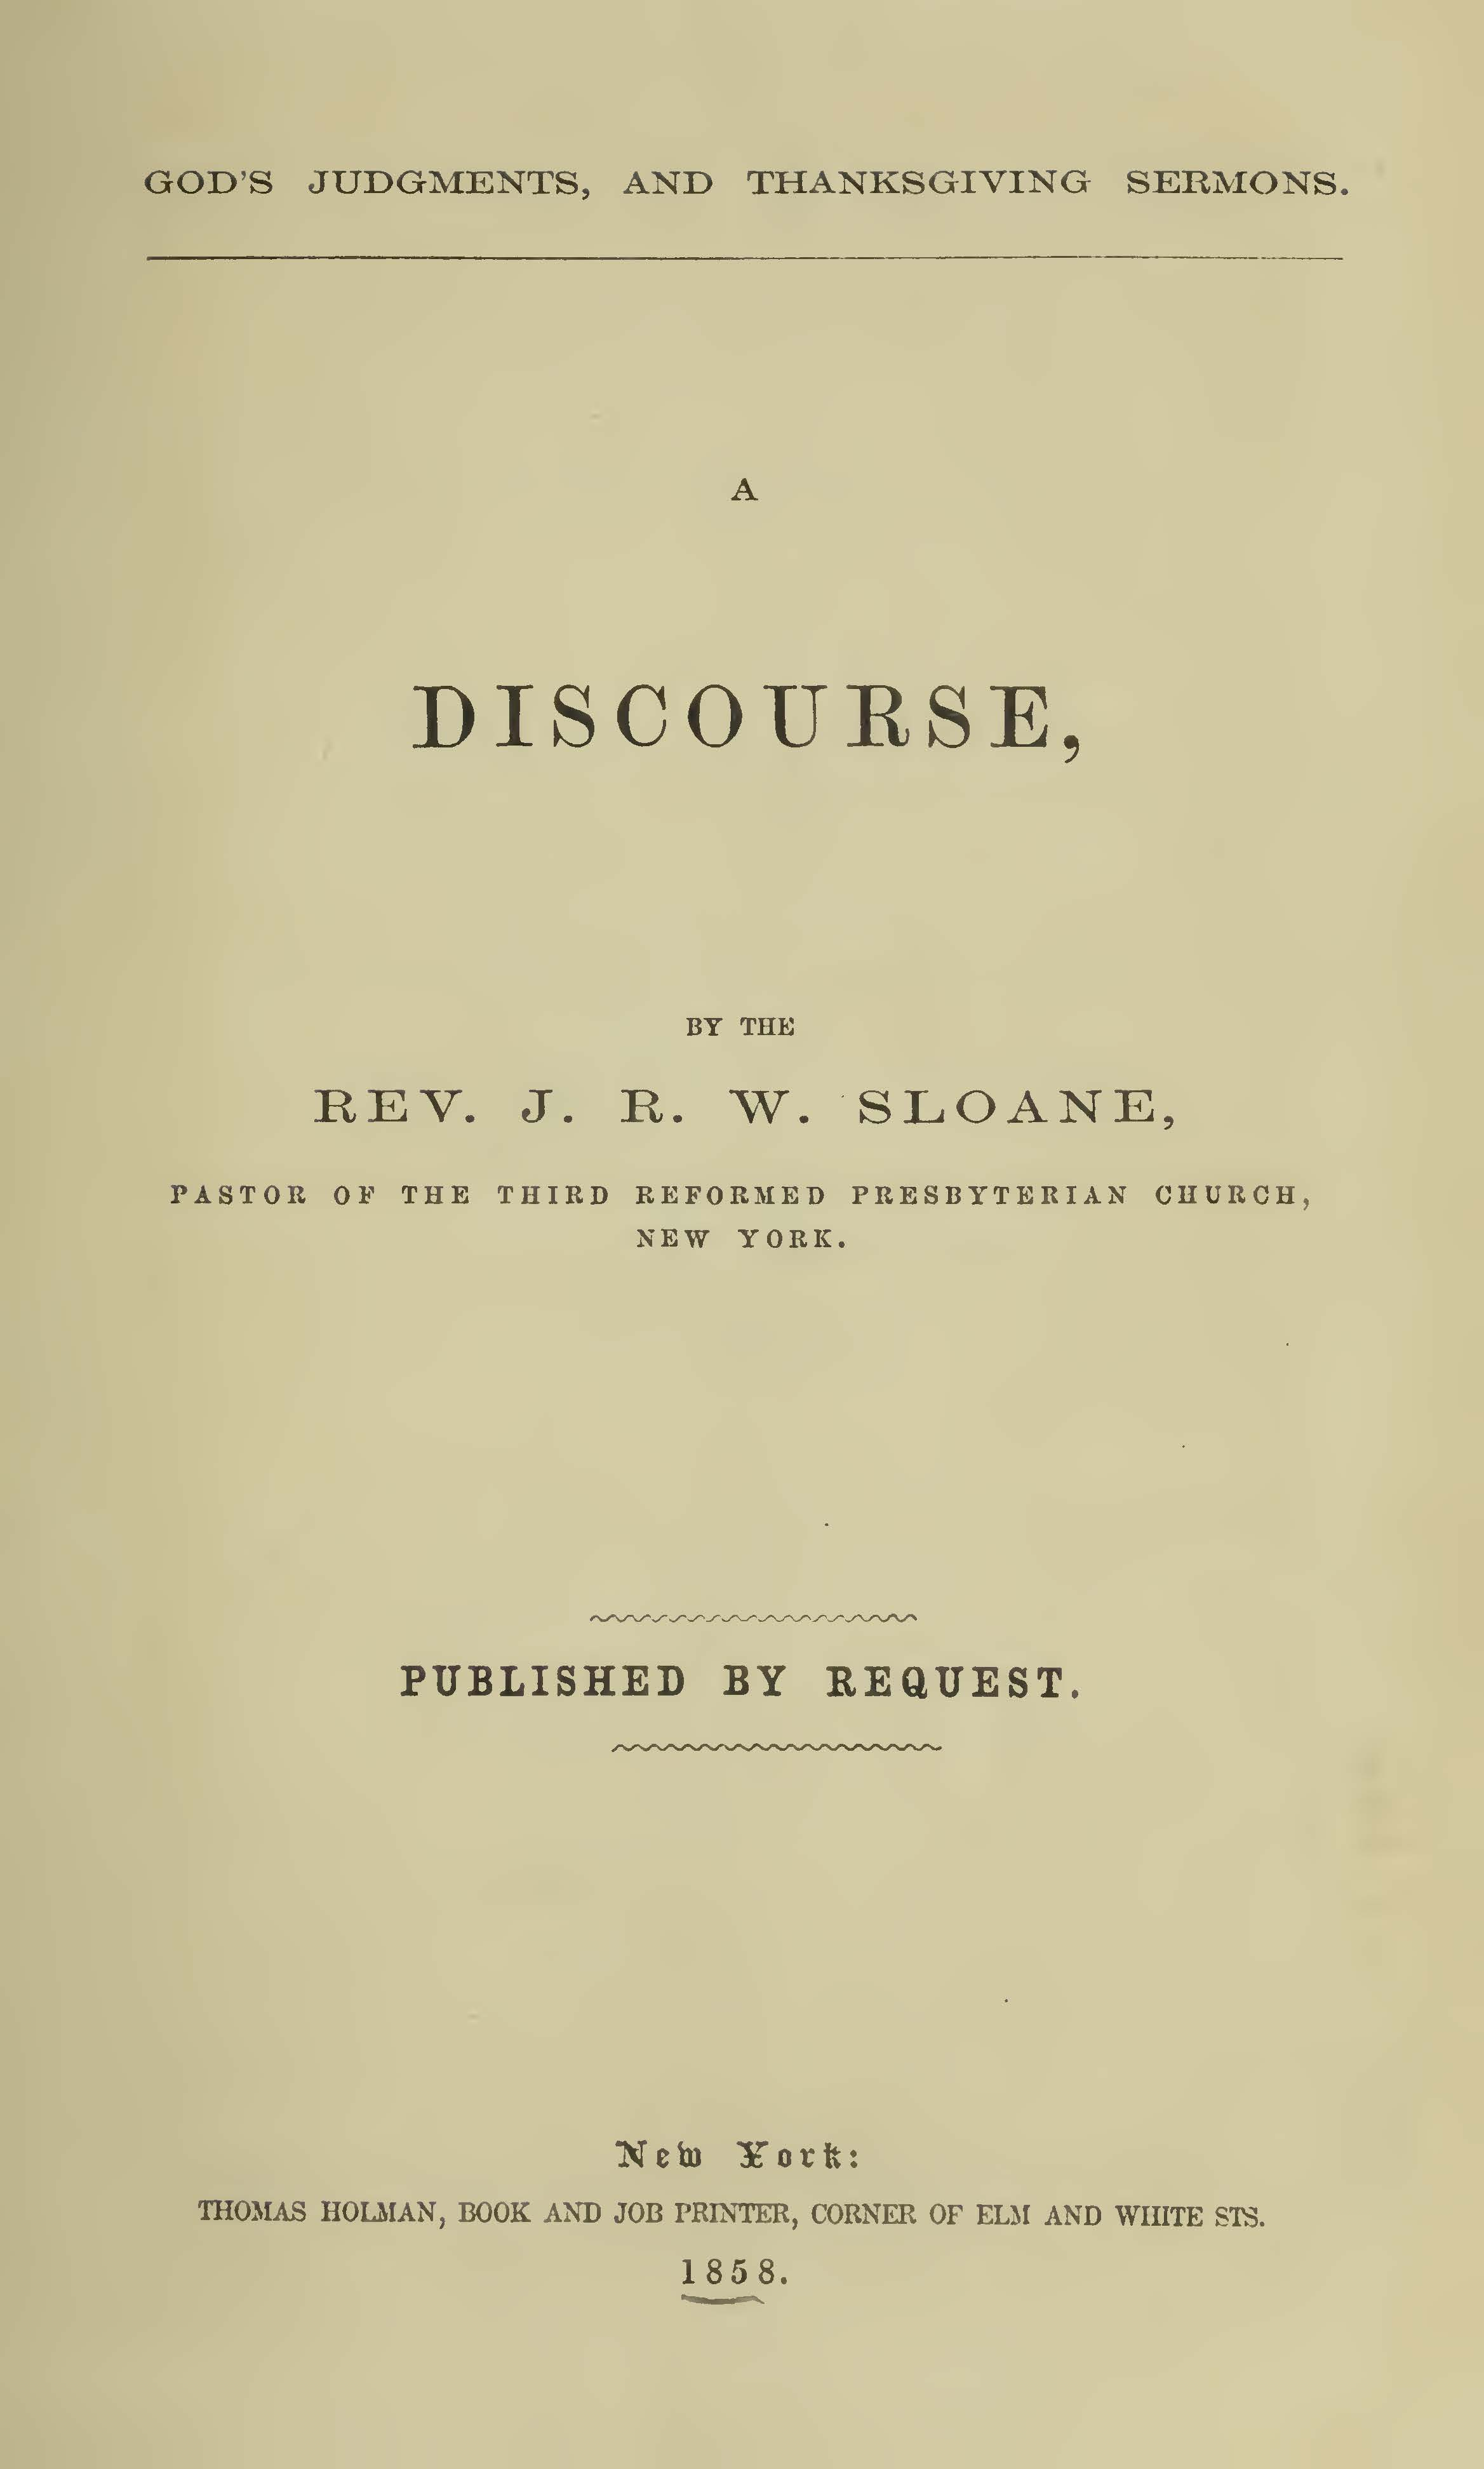 Sloane, James Renwick Wilson, God's Judgments and Thanksgiving Sermons A Discourse Title Page.jpg